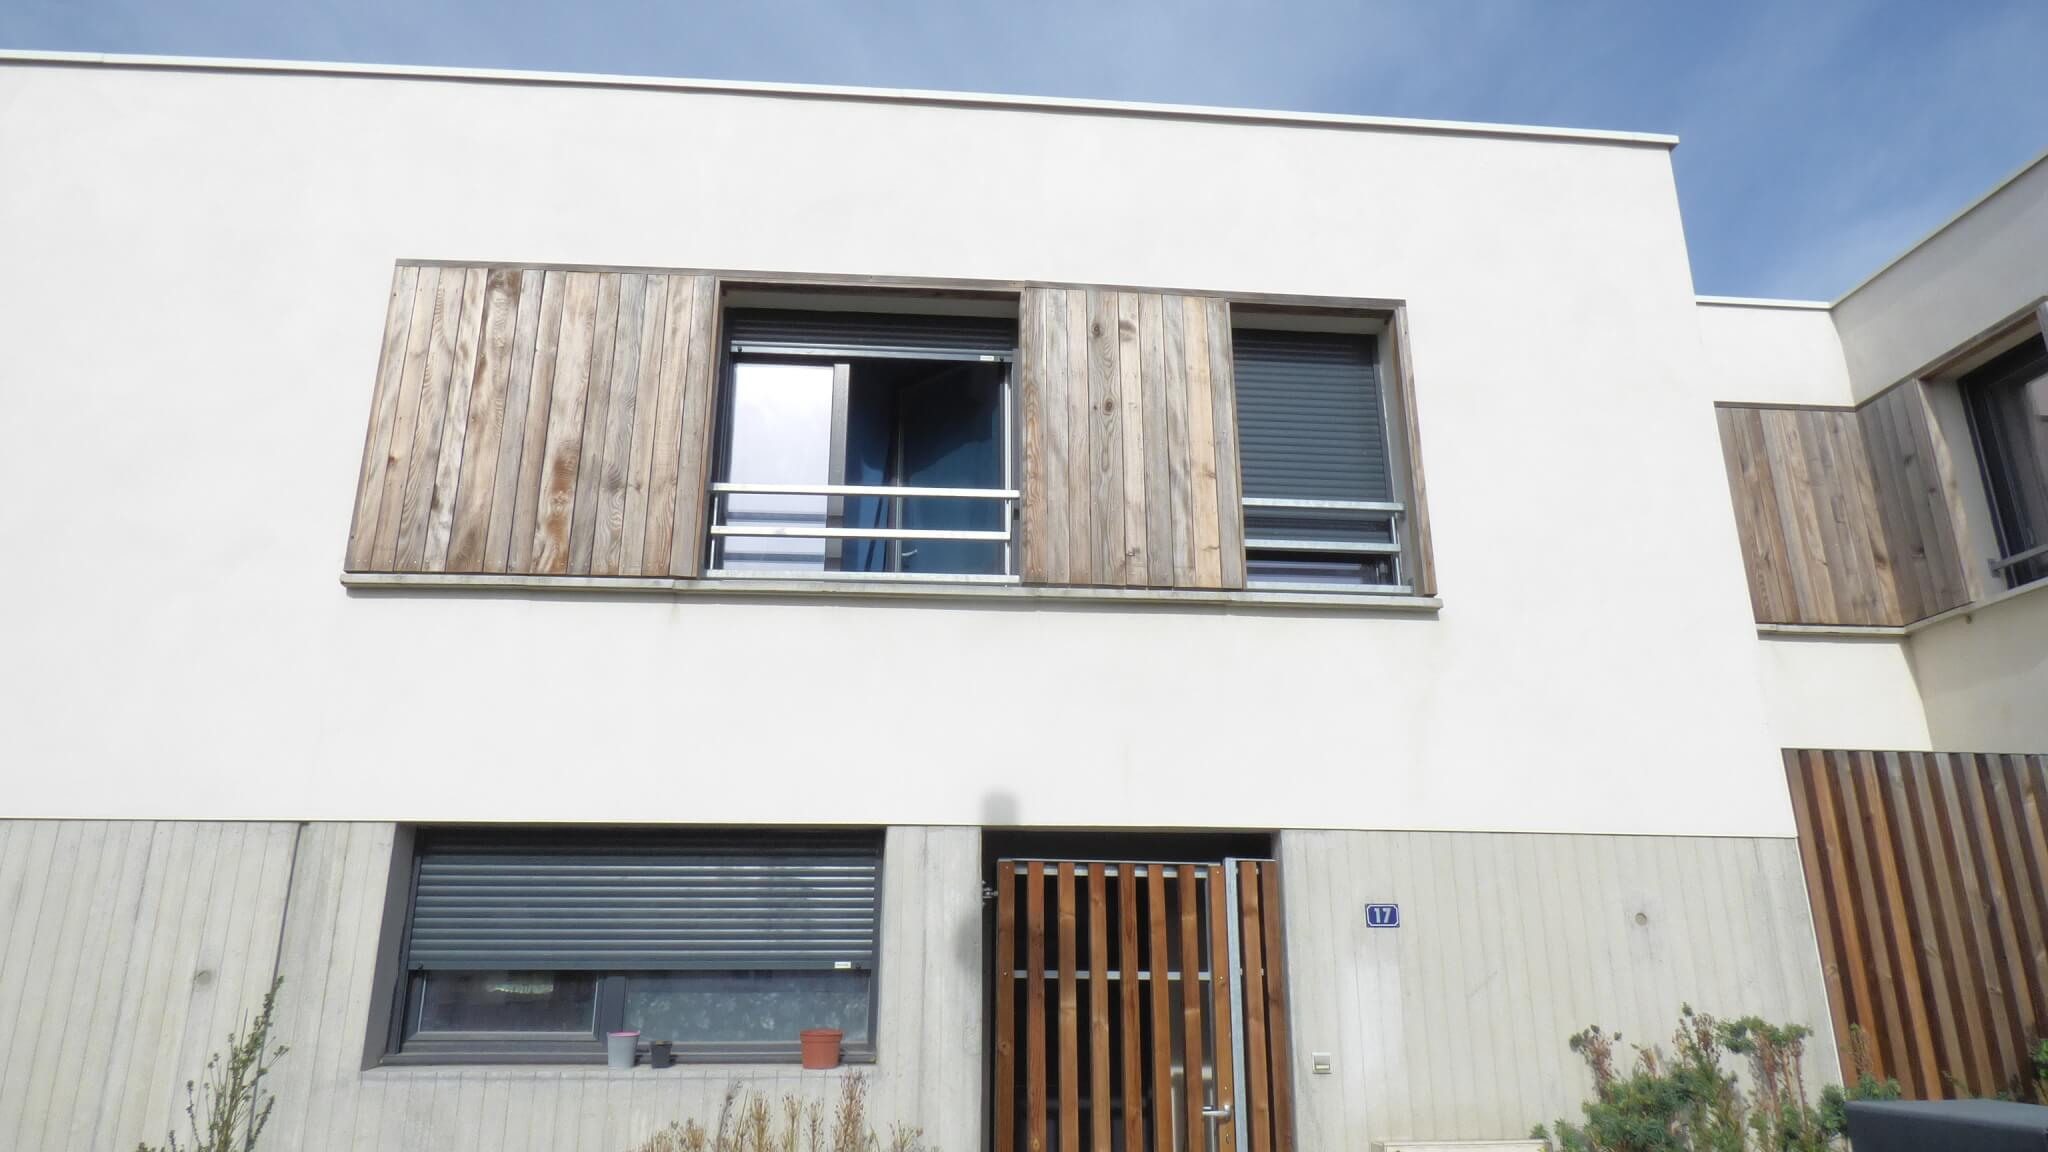 Maison de ville Duplex- T5- 2 places de parking sous-sol